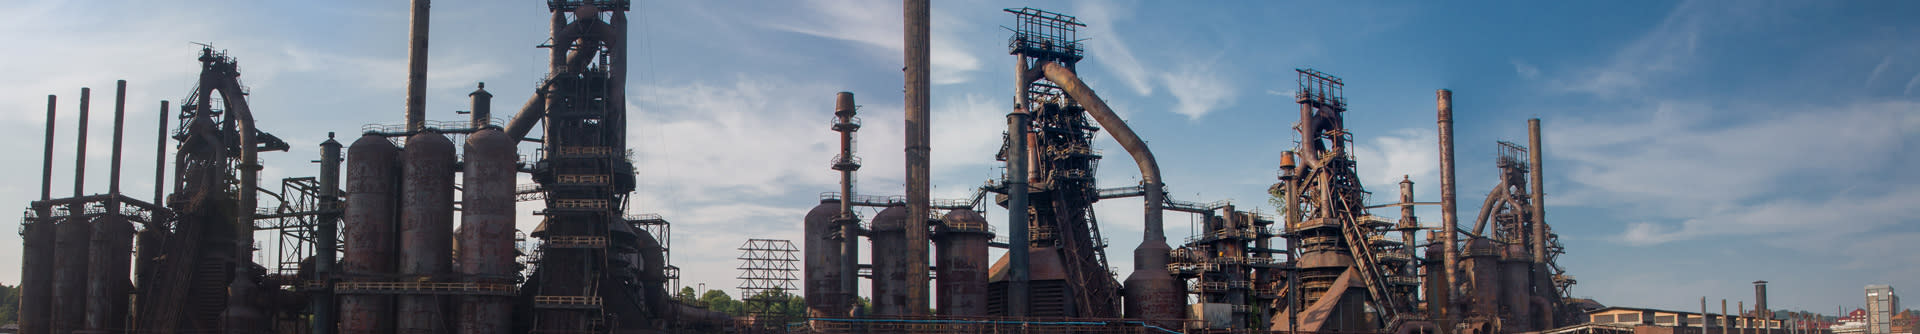 Bethlehem SteelStacks Interior Header